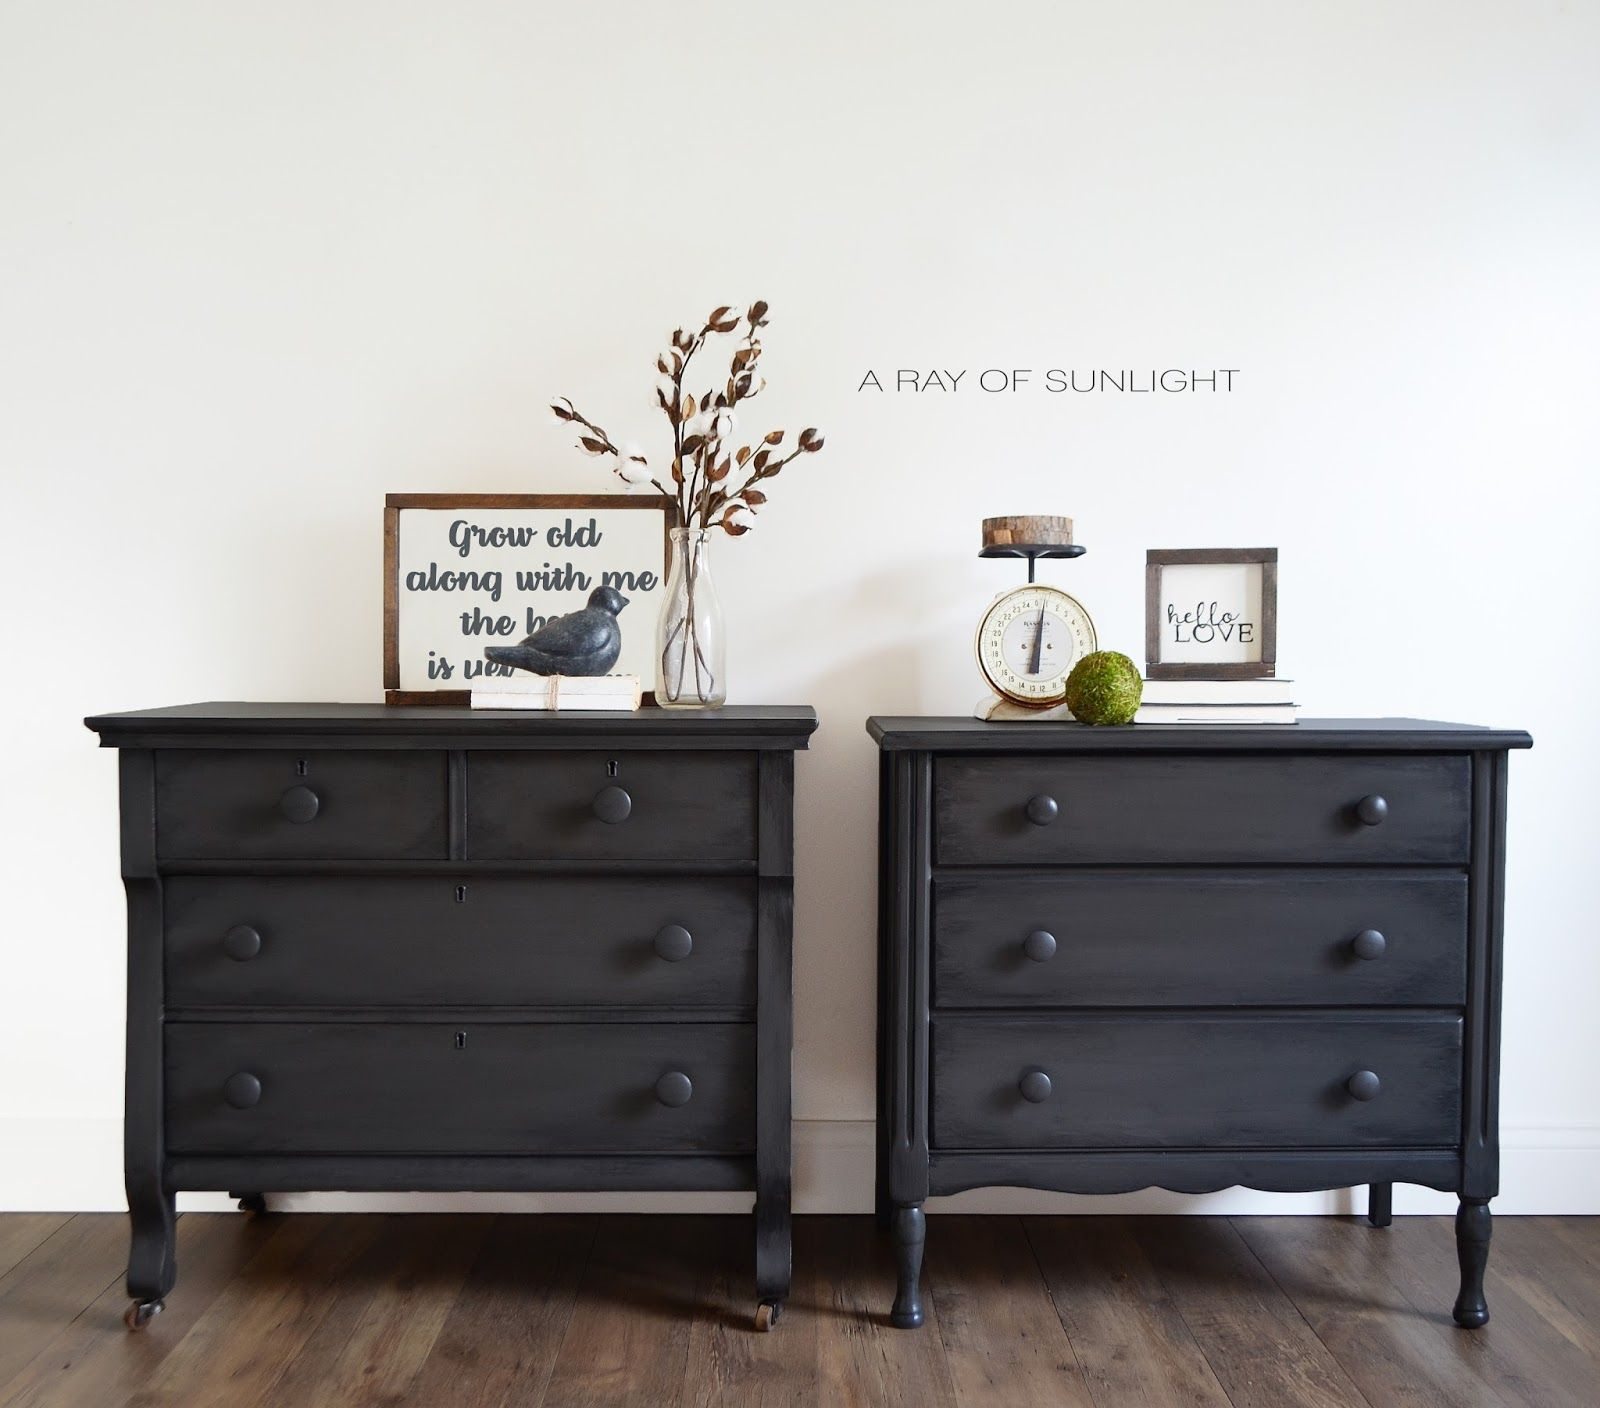 His And Hers Mismatch Grey Nightstands Or Dressers In Urbane Bronze With Black Antique Glazing By A Ray Of Sunl Furniture Home Furniture Living Room Furniture